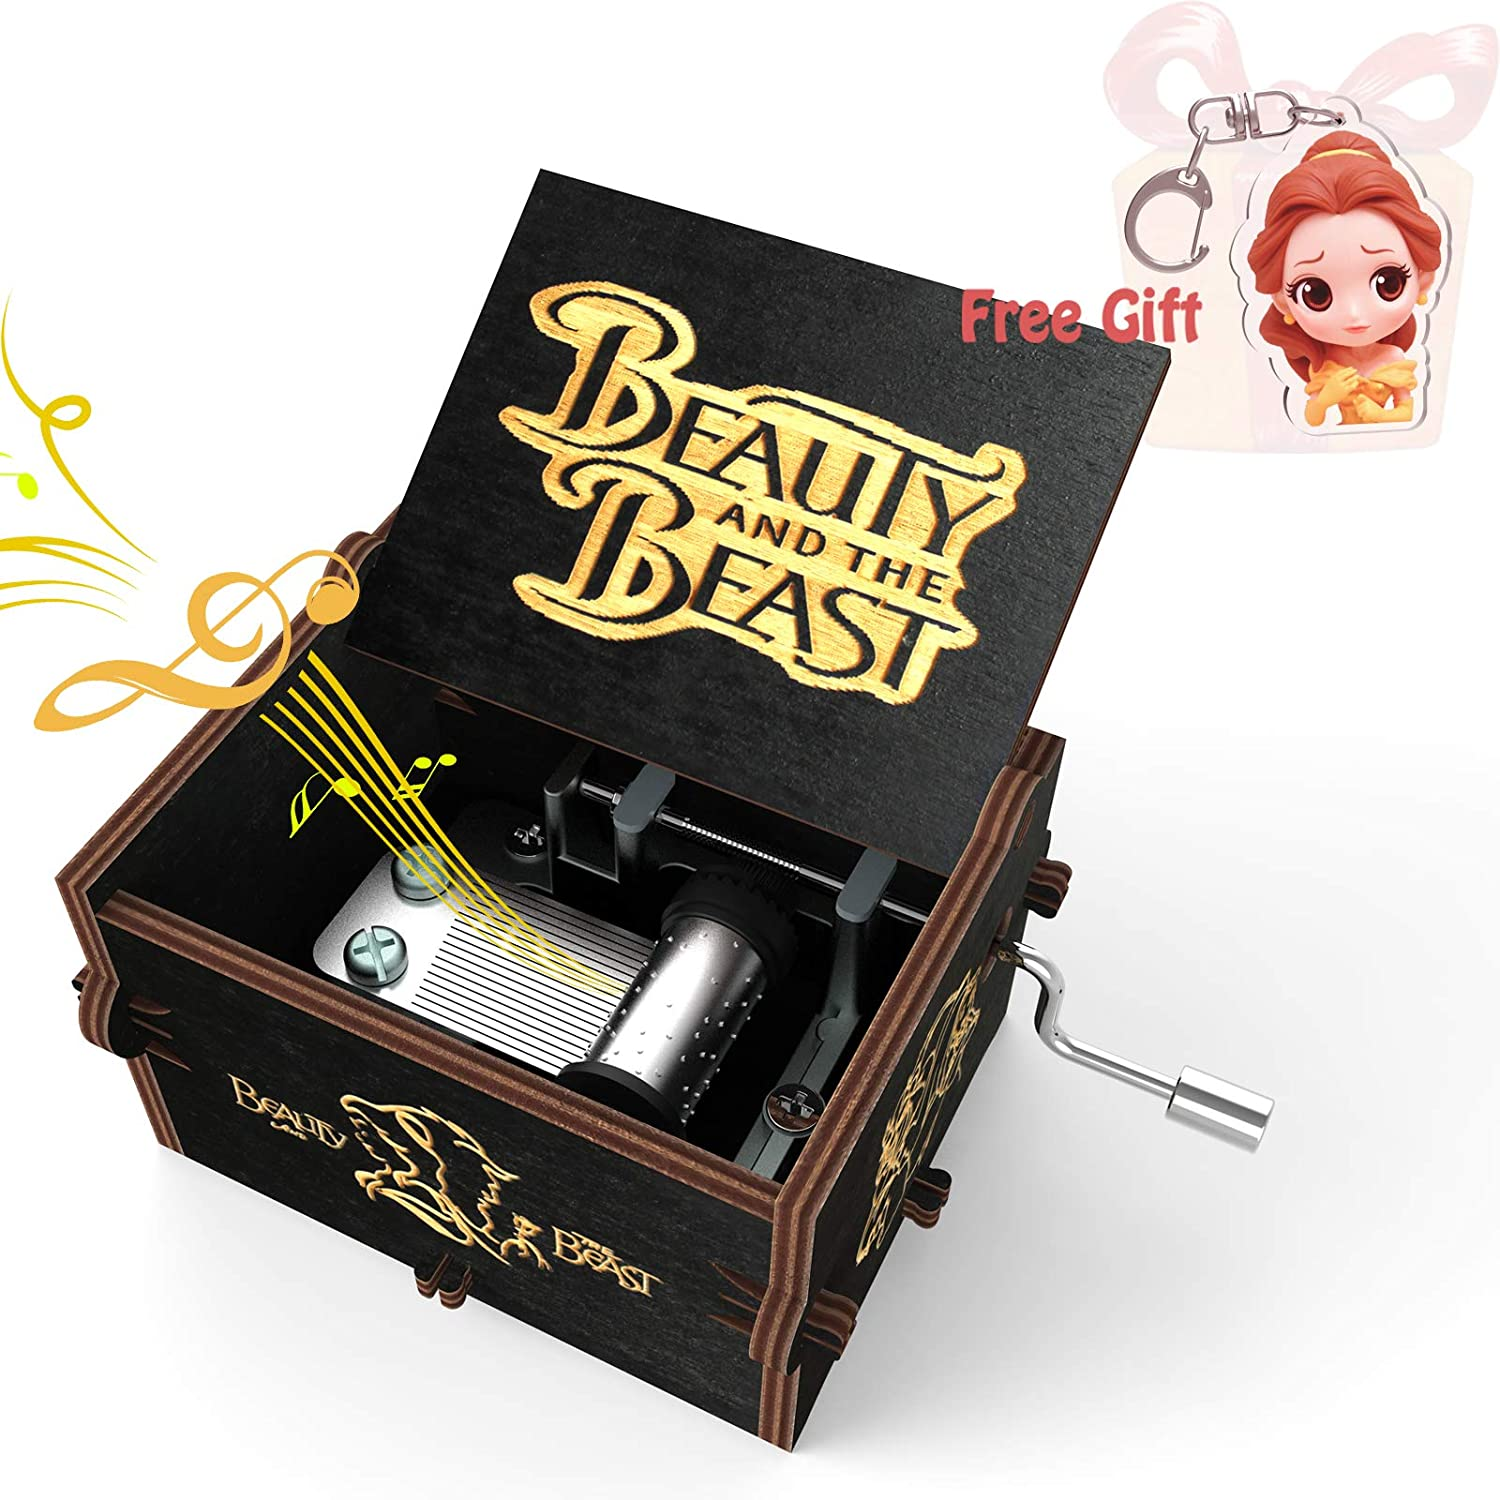 ROSIKING Beauty and The Beast Heart Shaped Vintage Wood Carved Mechanism Musical Box Wind Up Music Box